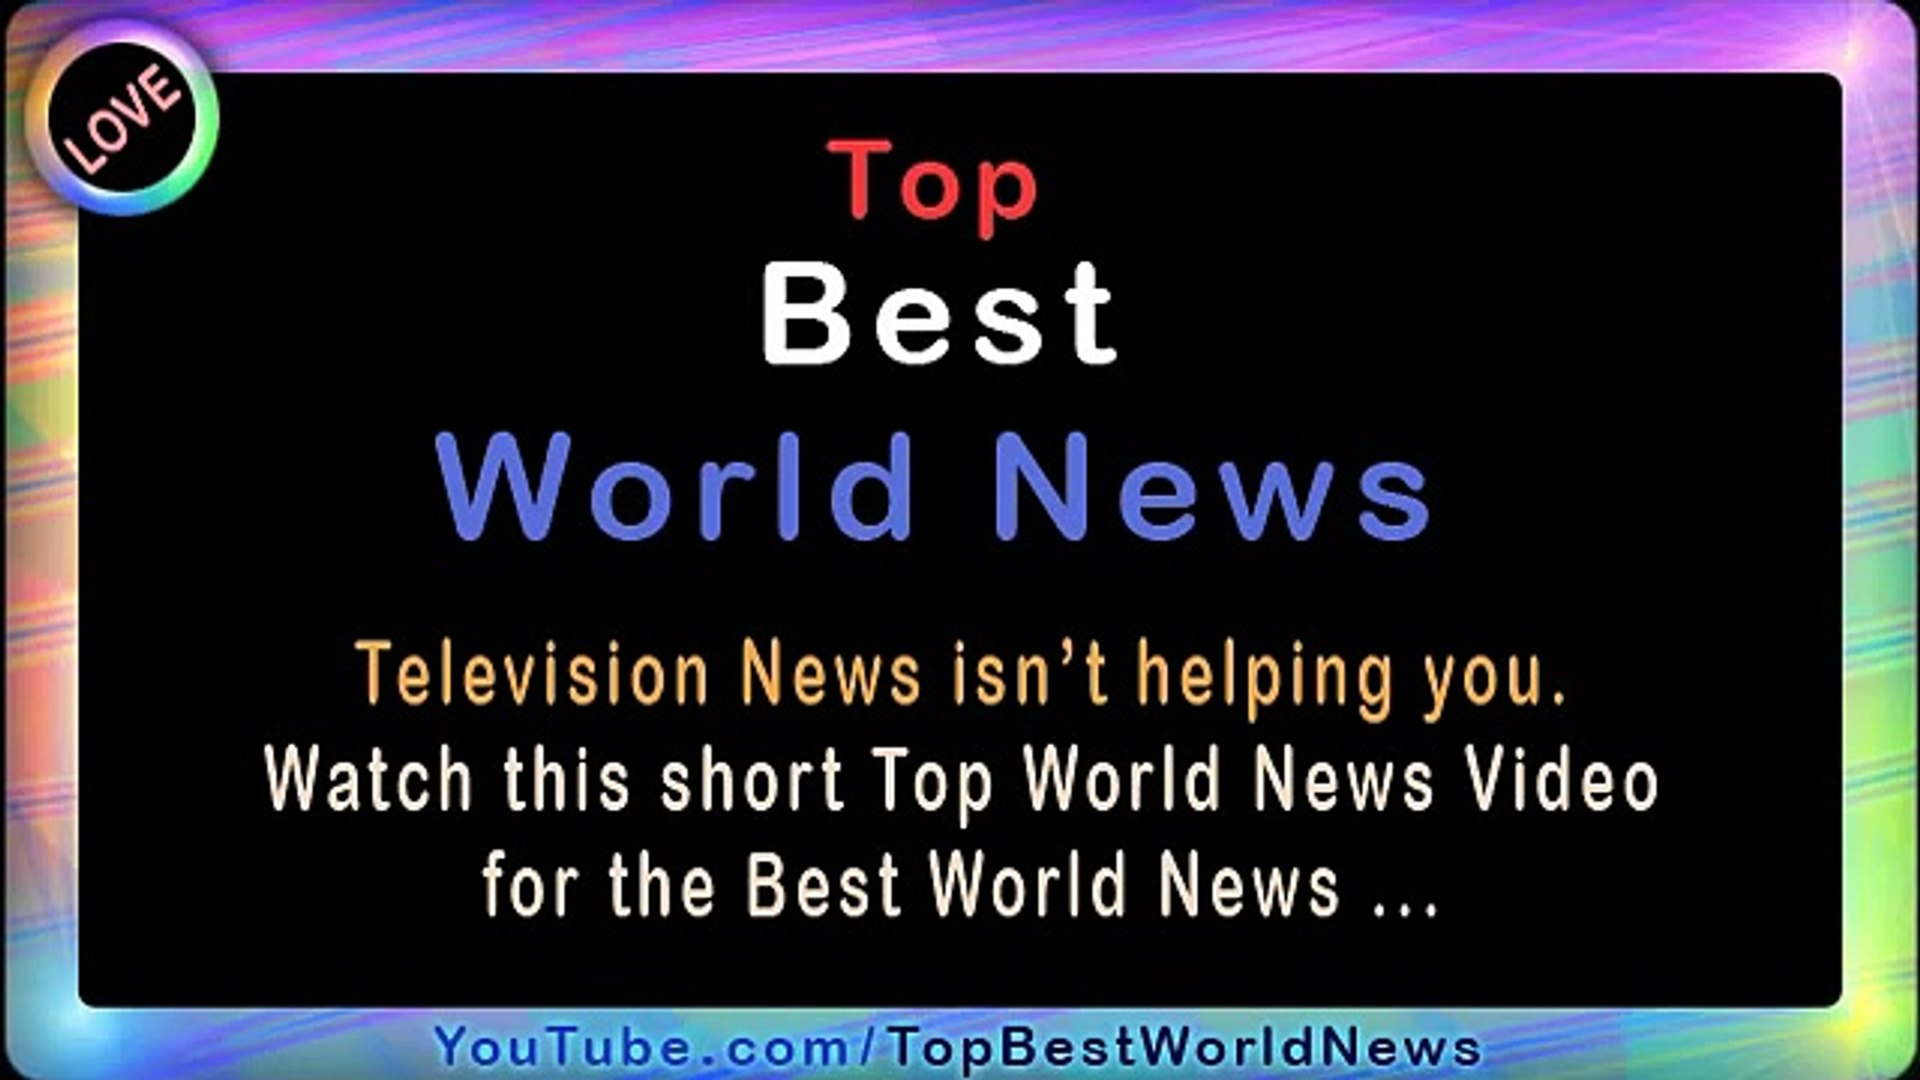 Top World News, Best World News, Latest World News Videos, Top News Stories!!!